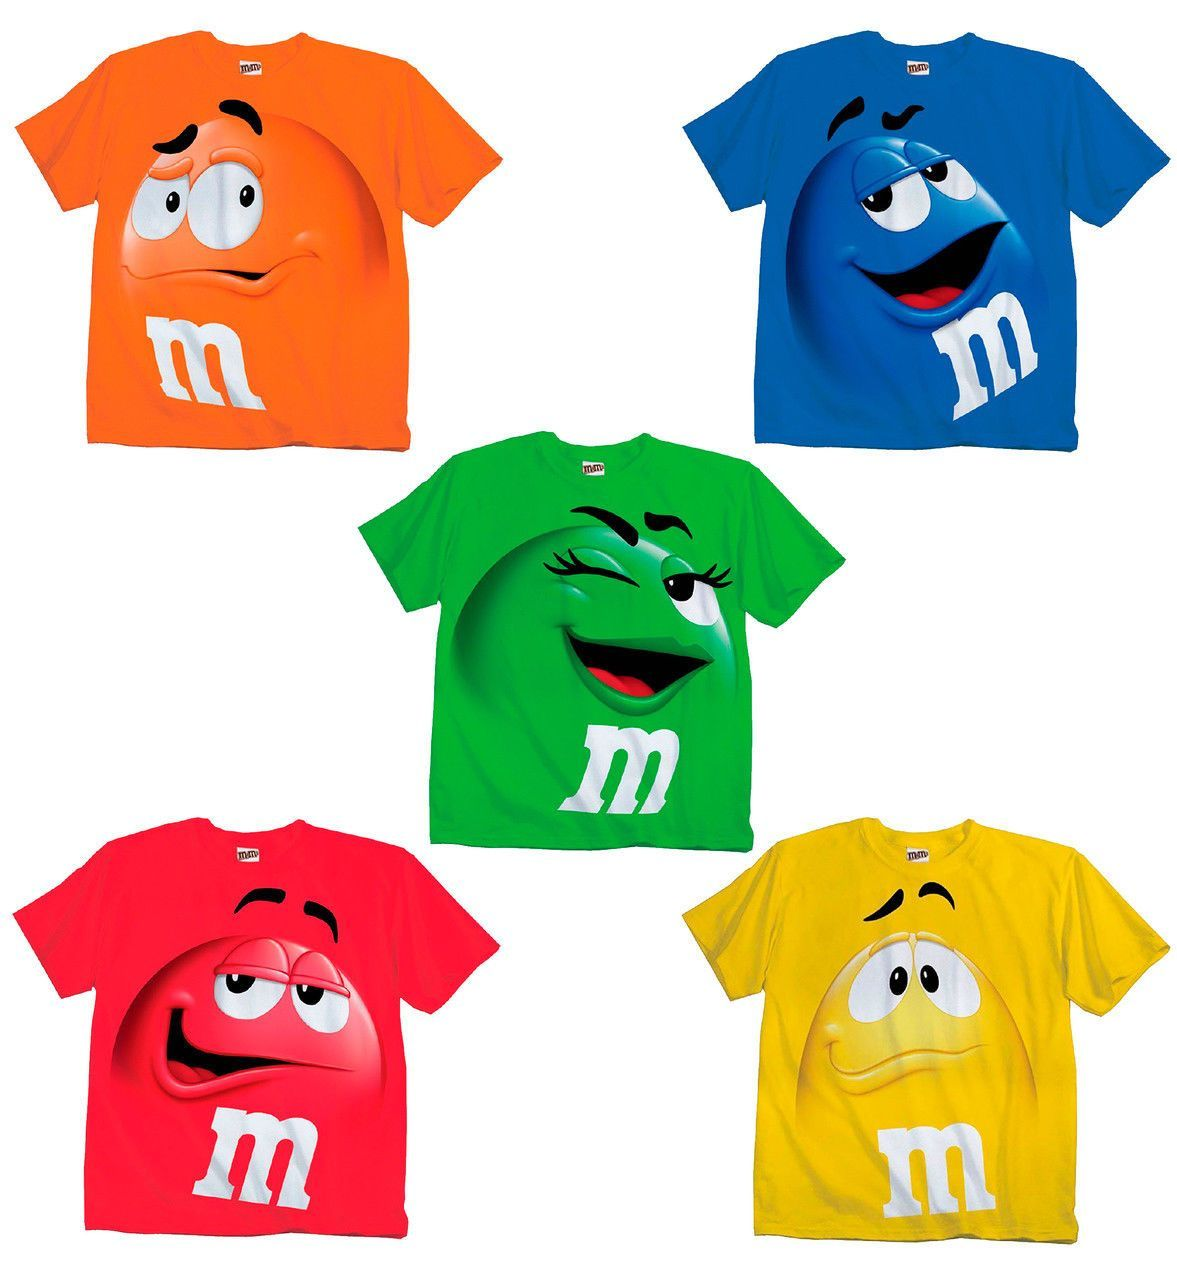 Details about Adult & Youth Kids M&M's M&M Face Chocolate Candy Costume T-Shirt Tee M M shirt #mamp;mcostumediy